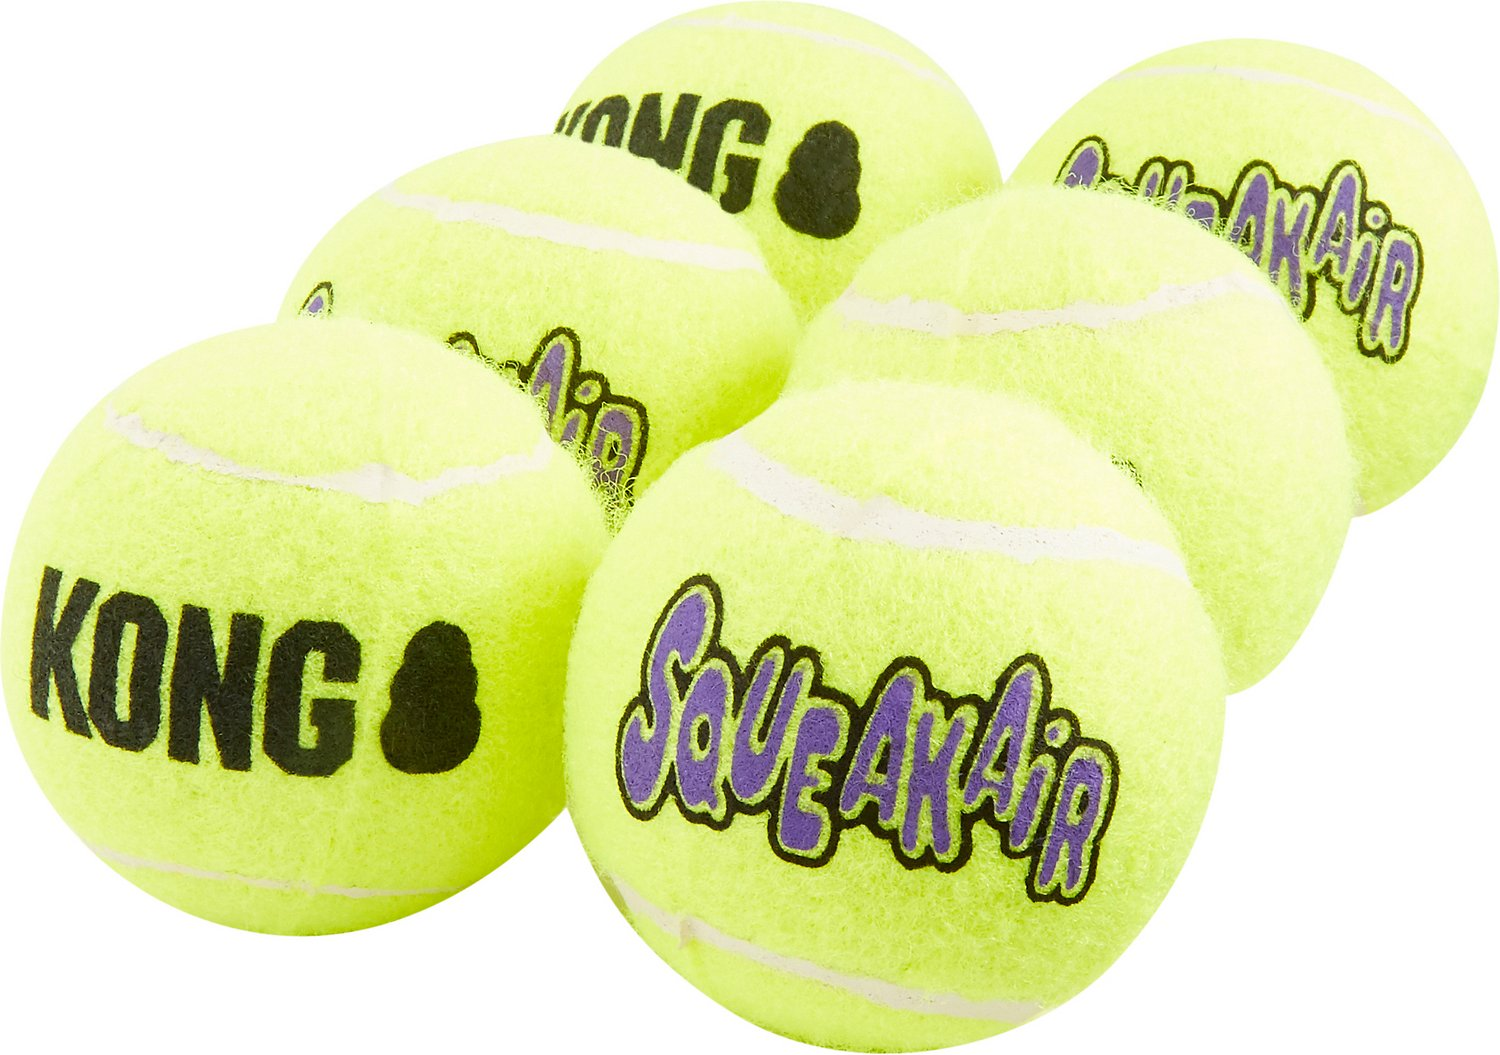 KONG SqueakAir Balls Packs Dog Toy, Medium, 6-count (Size: Medium, 6-count) Image